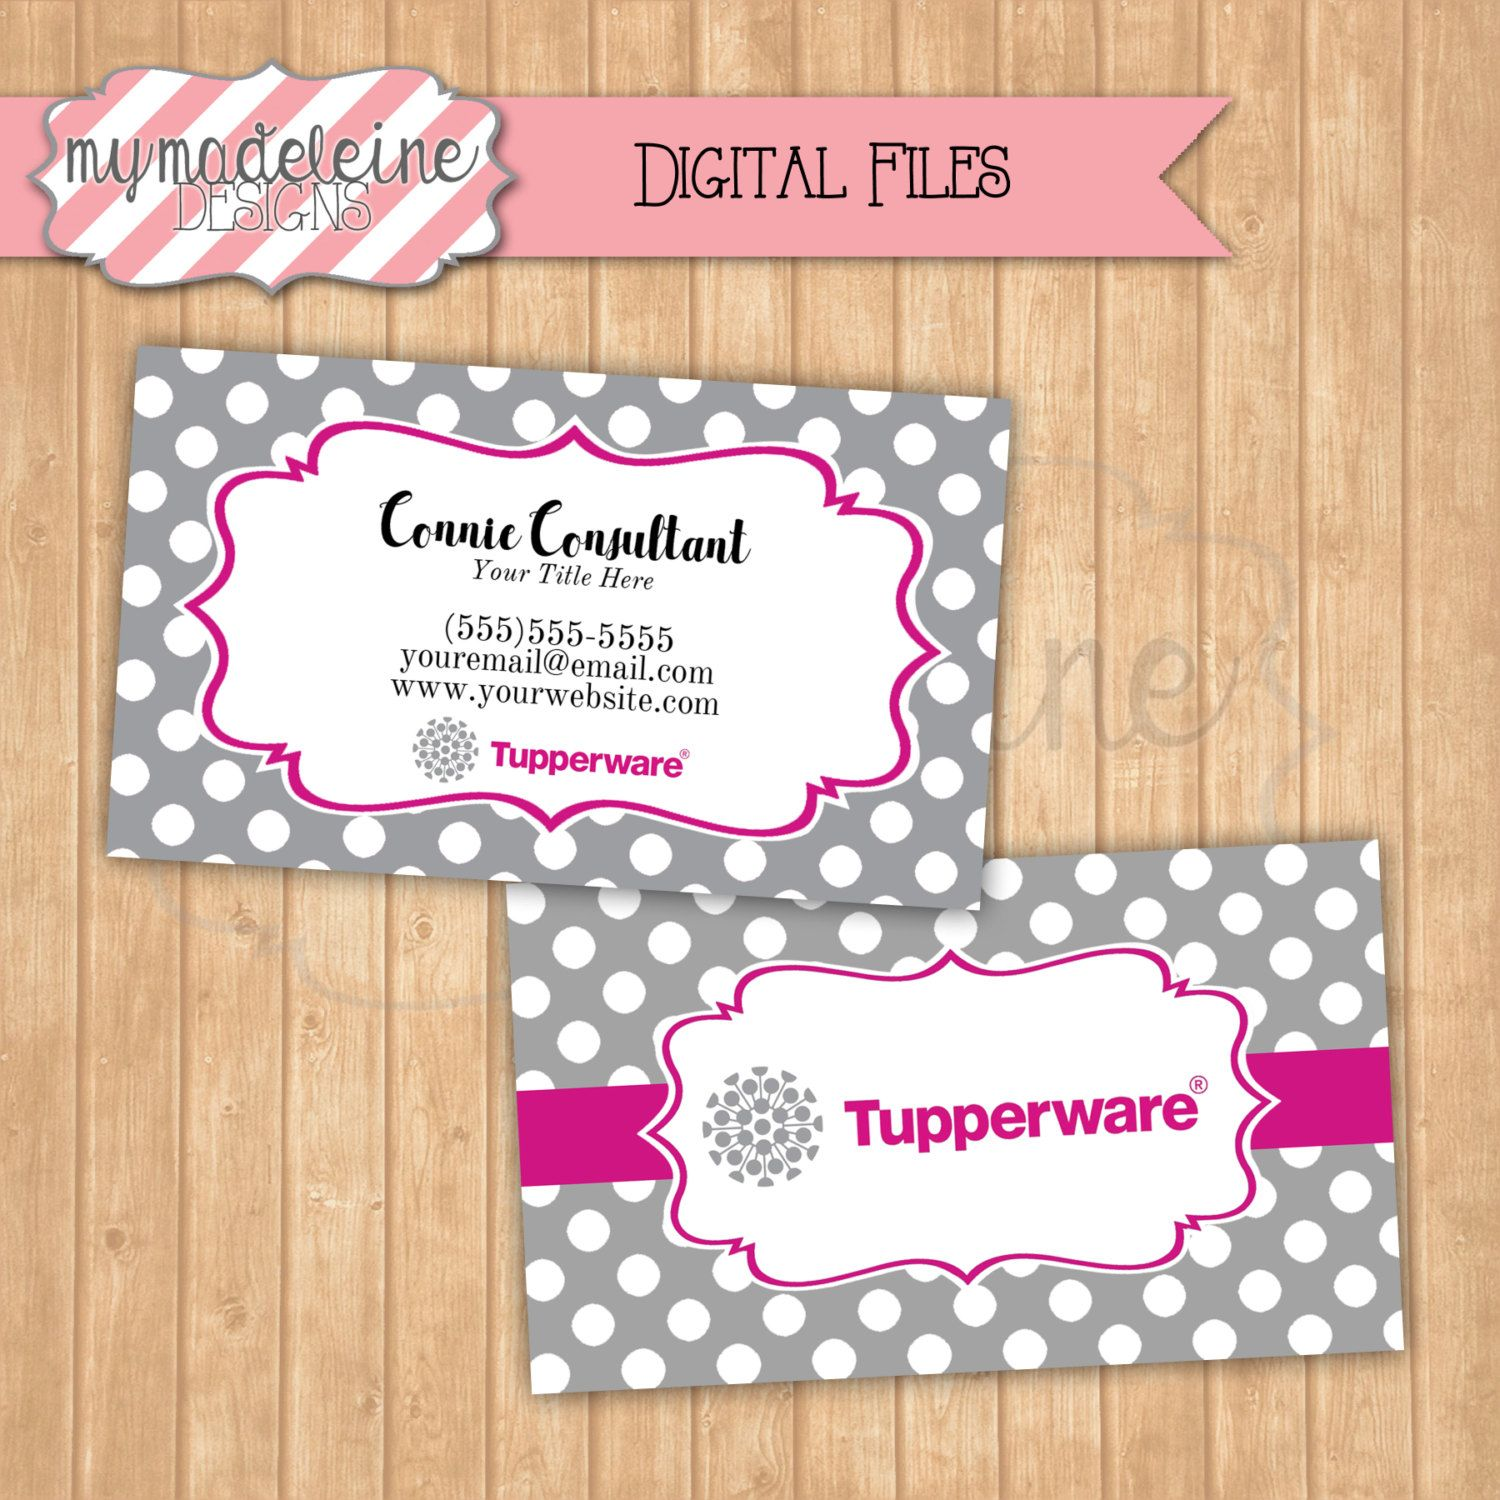 tupperware business card digital file direct sales business marketing by mymadeleine on etsy tupperware mymadeleinedesigns - Tupperware Business Cards